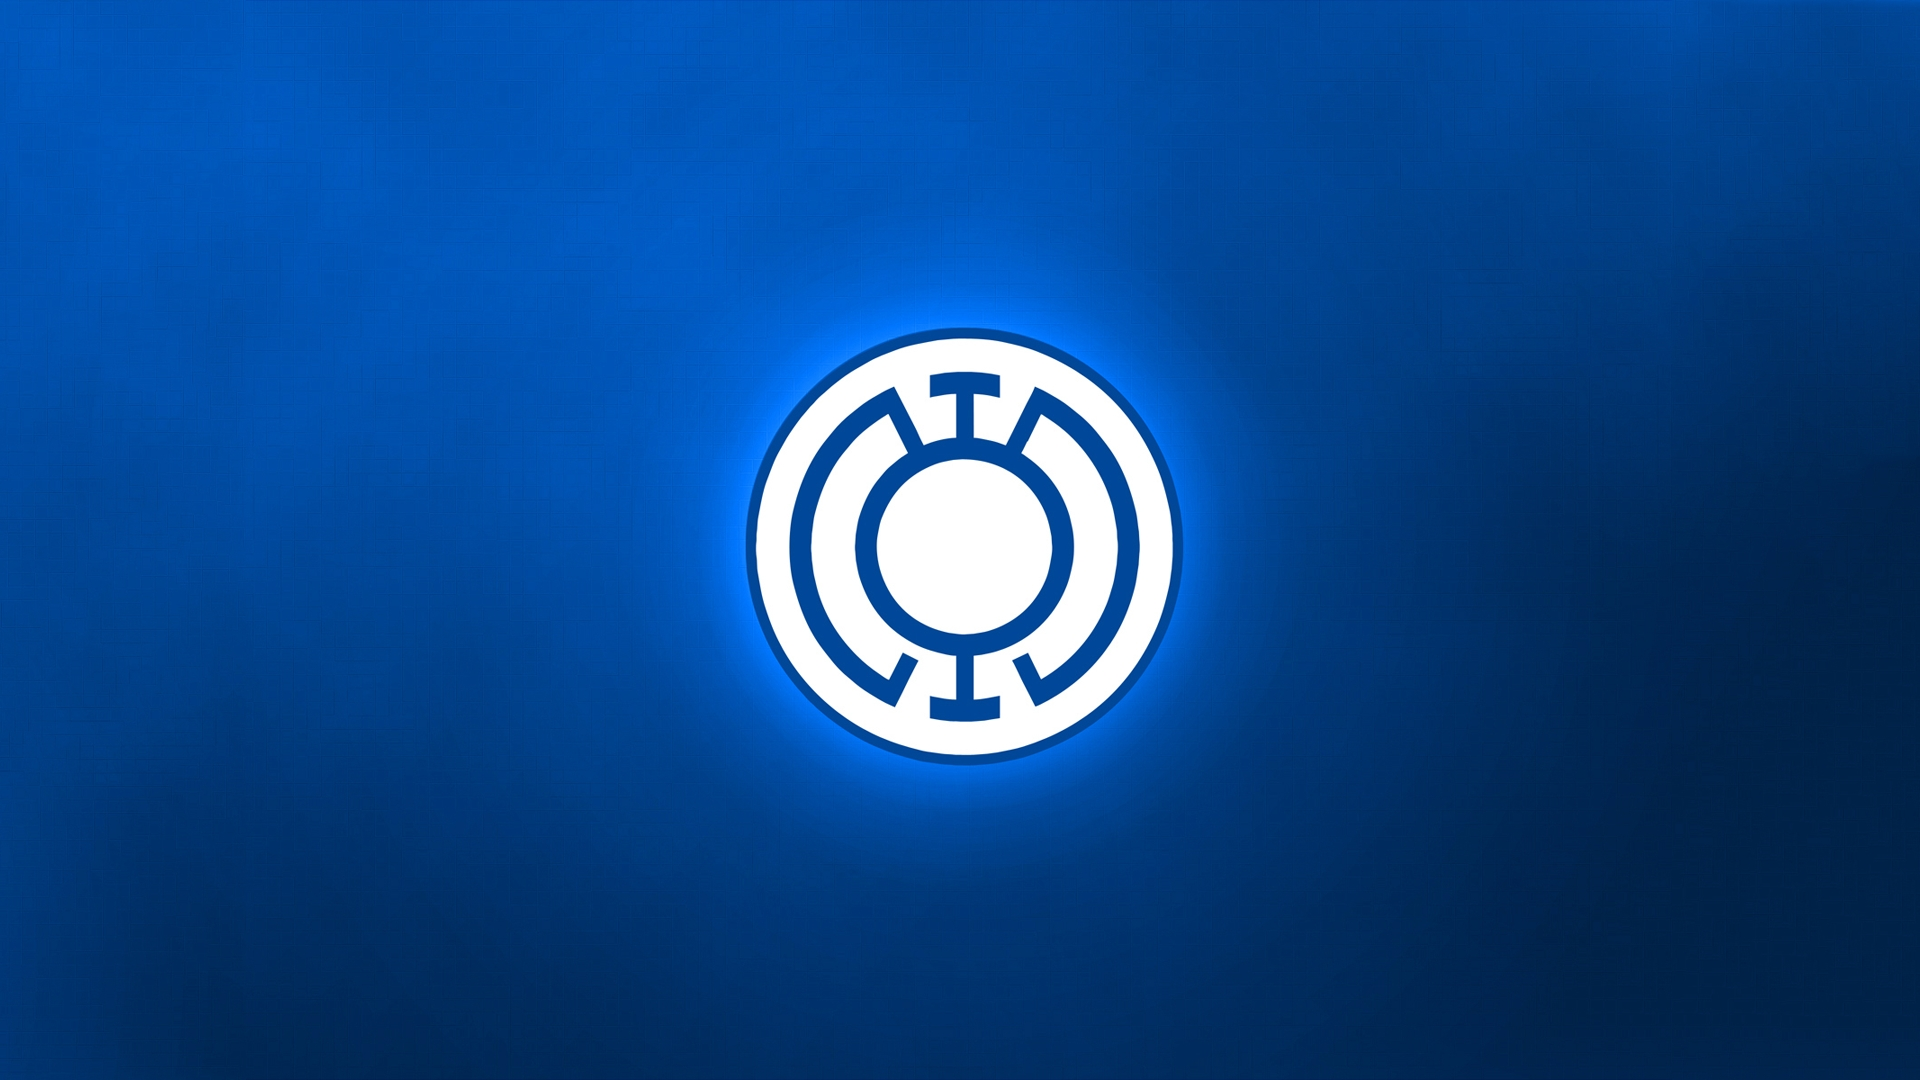 Comics   Blue Lantern Corps Wallpaper 1920x1080